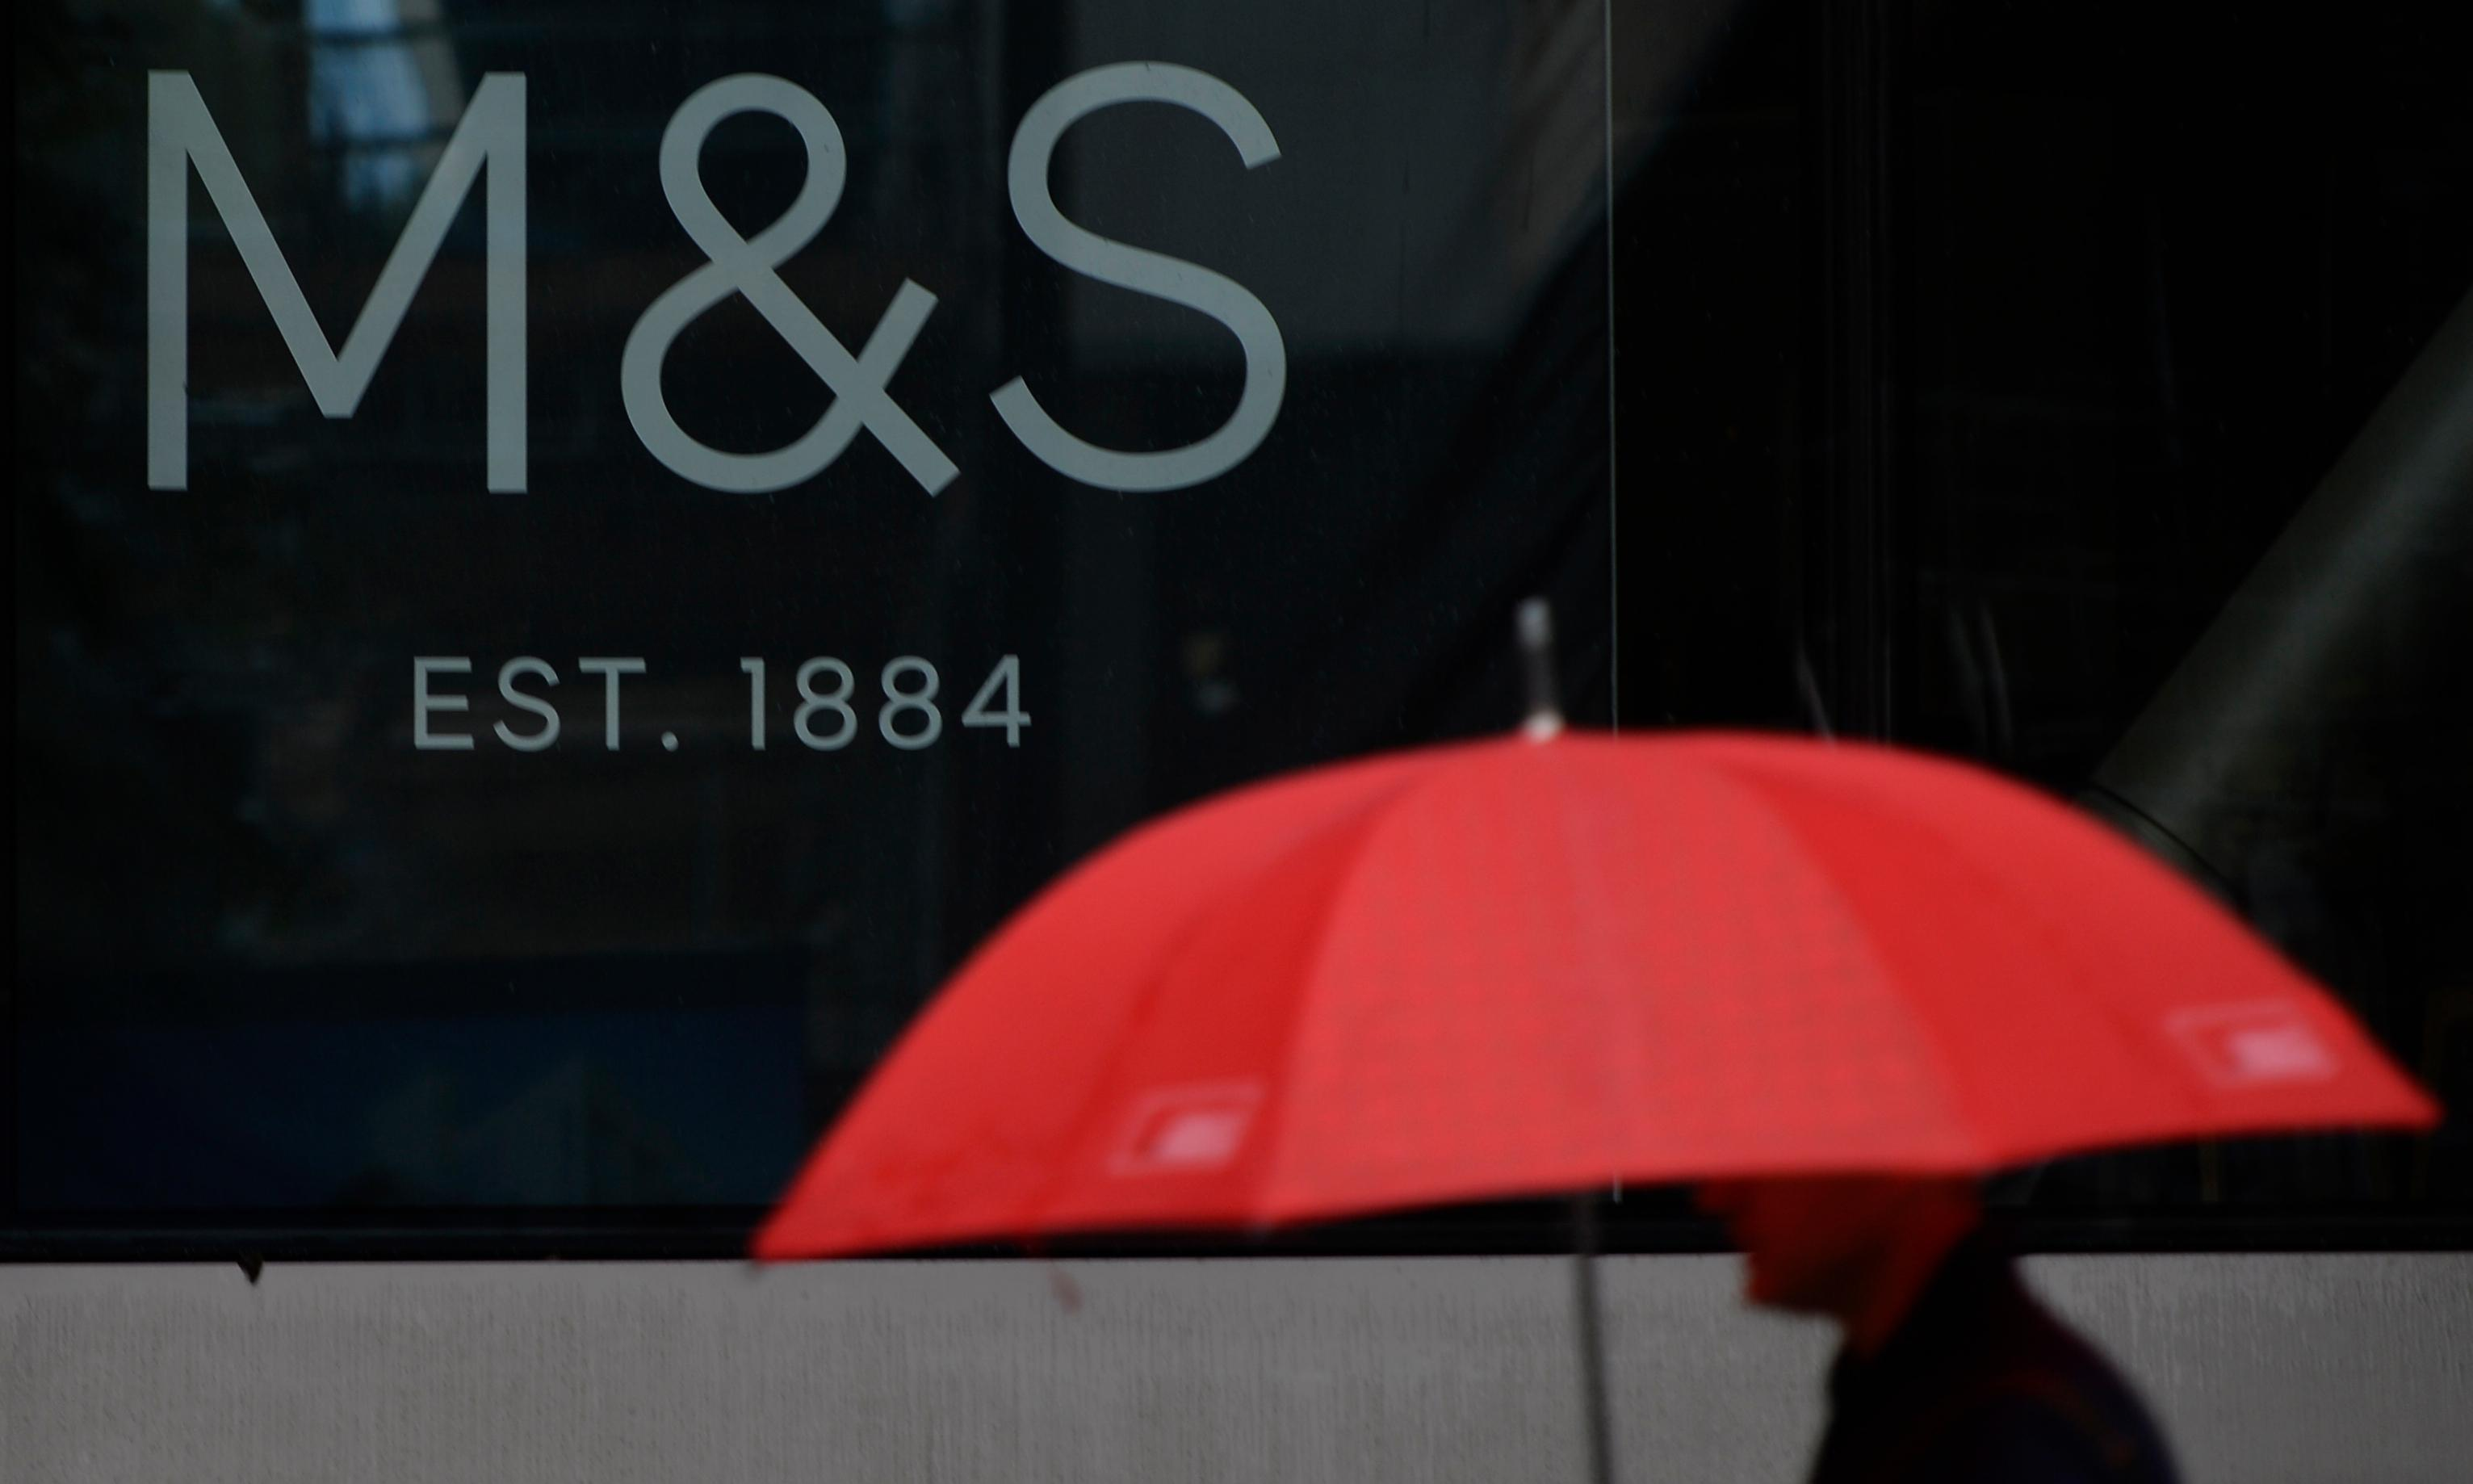 High street suffers 'summer slump' as Brexit and wet weather bite